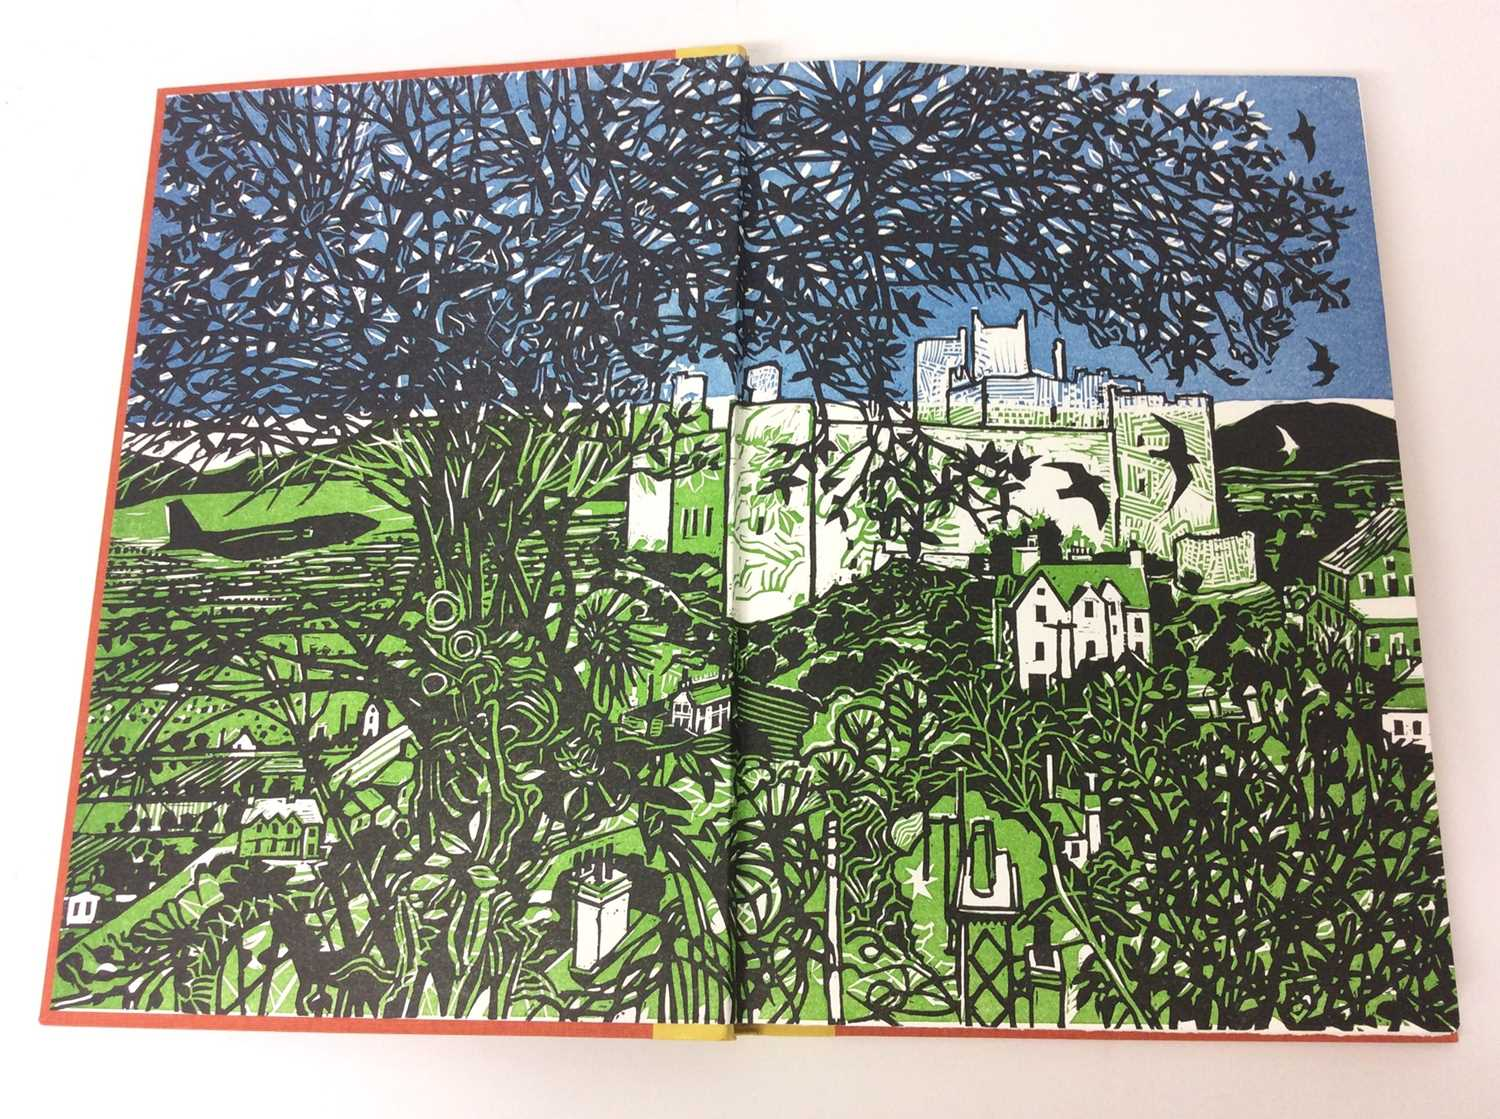 Pennant and His Welsh Landscape with woodcuts by Rigby Graham by Gregynog Press 2006, limited editio - Image 3 of 9